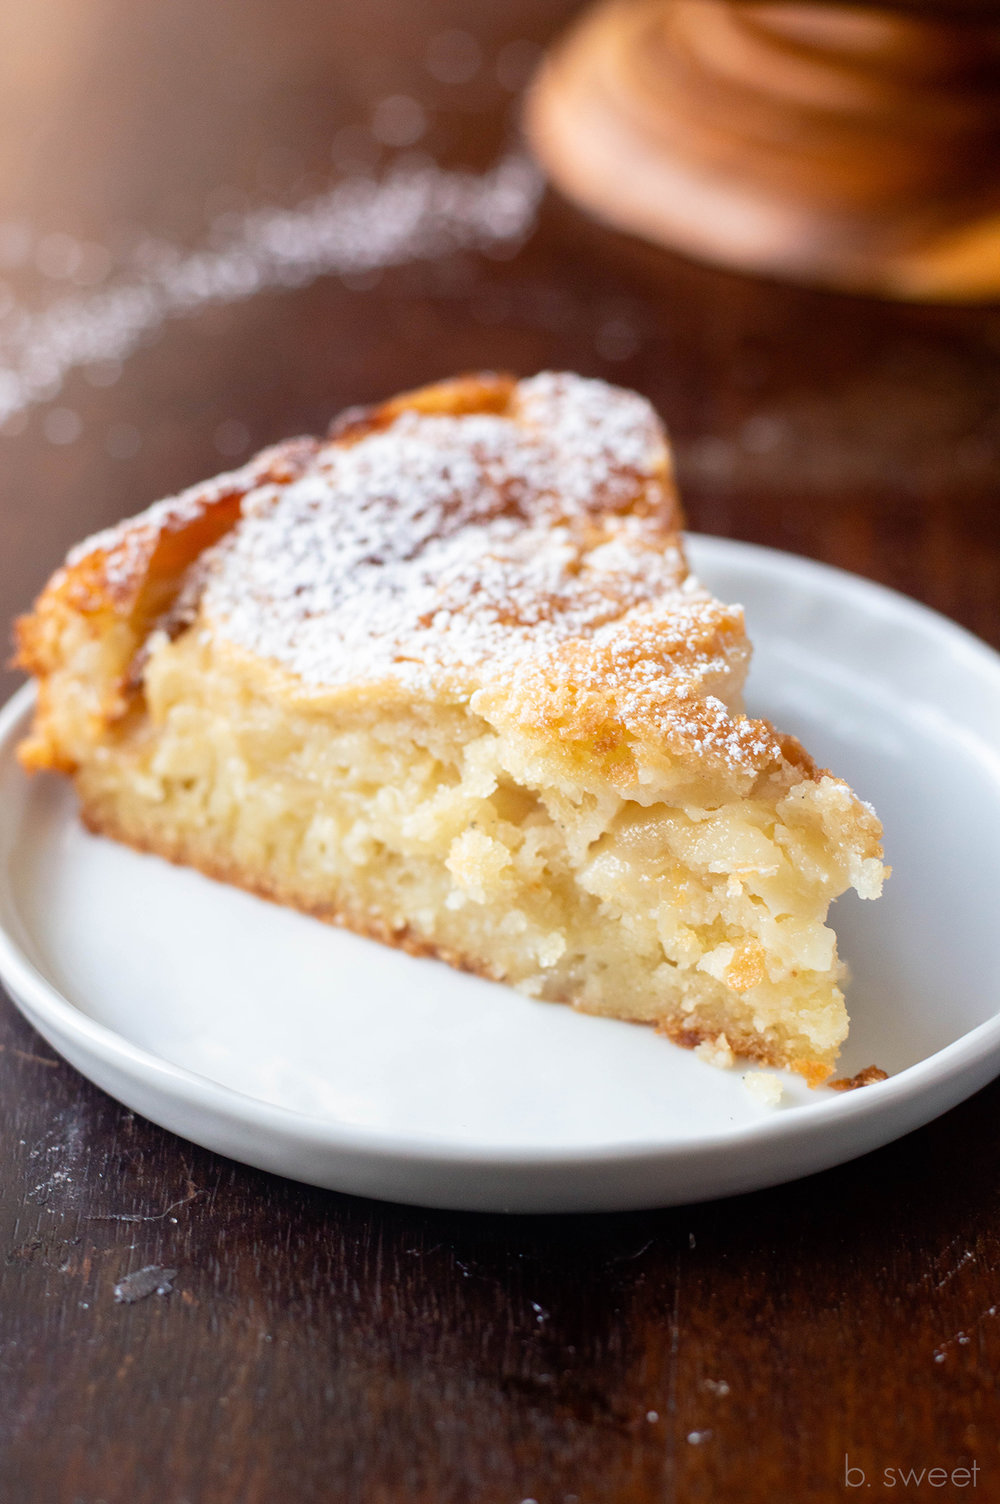 French Apple Cake with Maple Ginger Custard Sauce - b. sweet